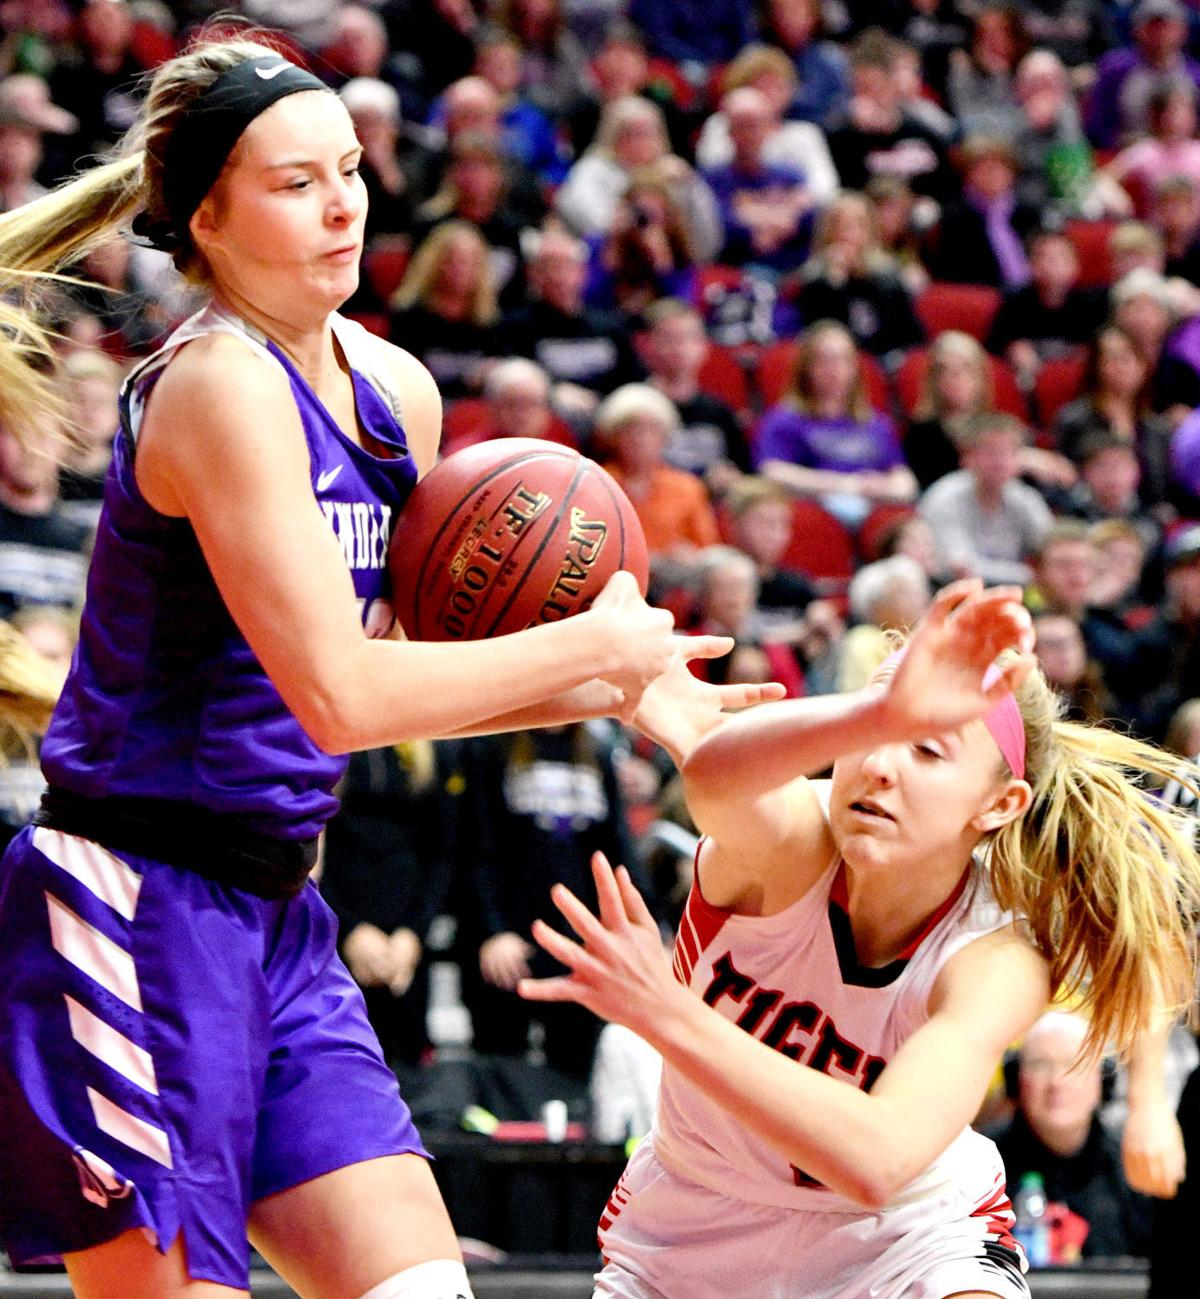 022618TH-Cedar-Falls-Indianola-5